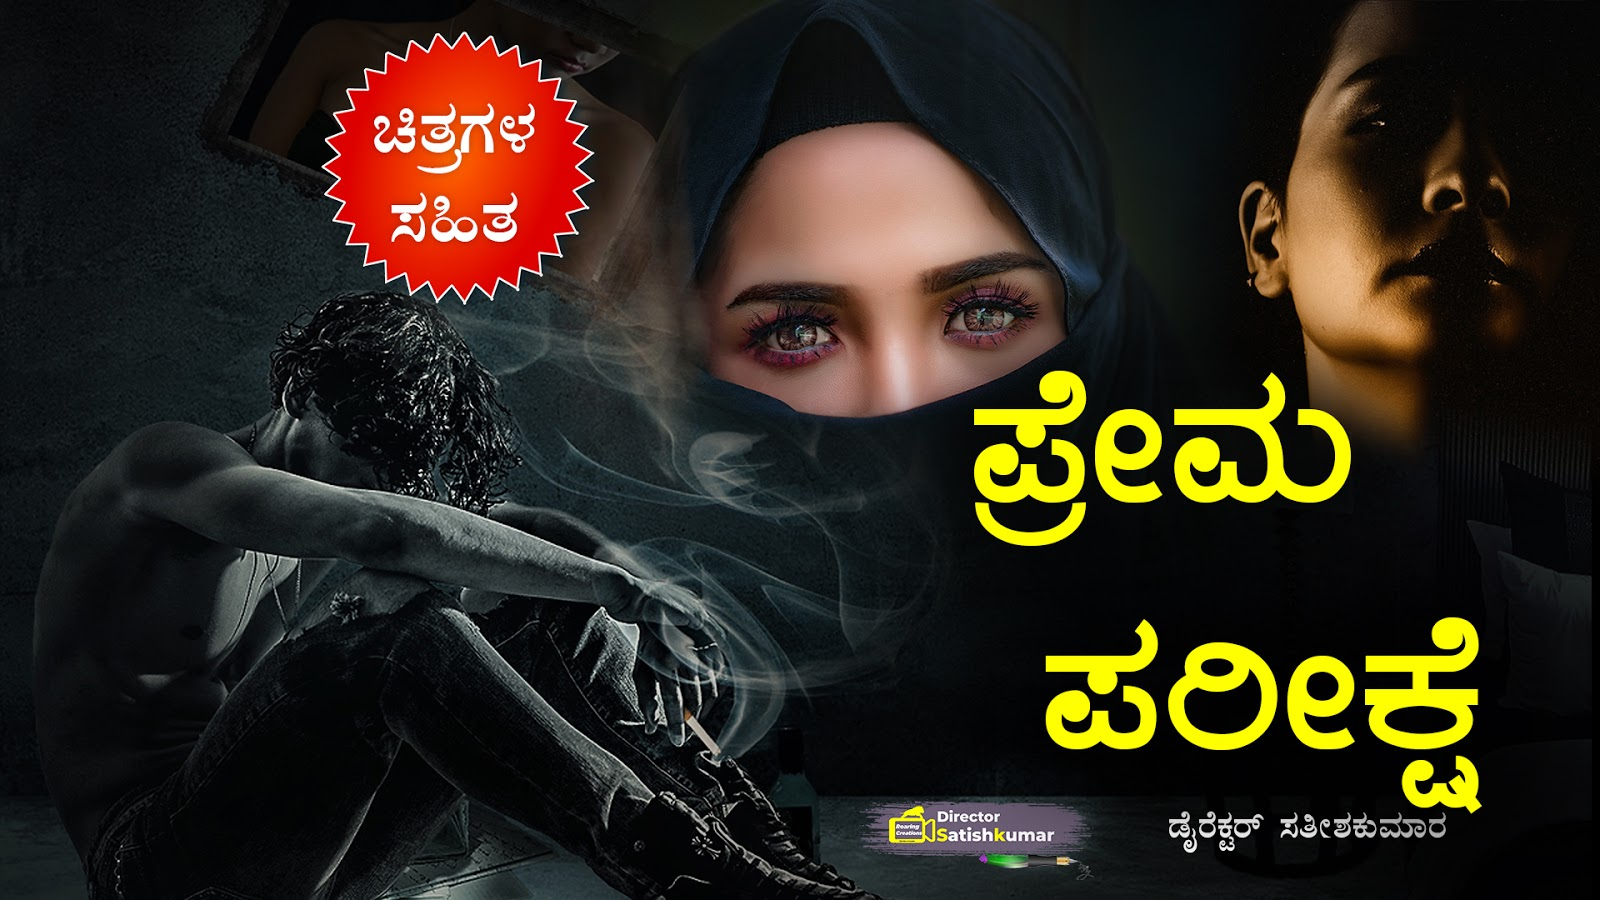 ಪ್ರೇಮ ಪರೀಕ್ಷೆ : Husband and Beautiful Wife story in Kannada